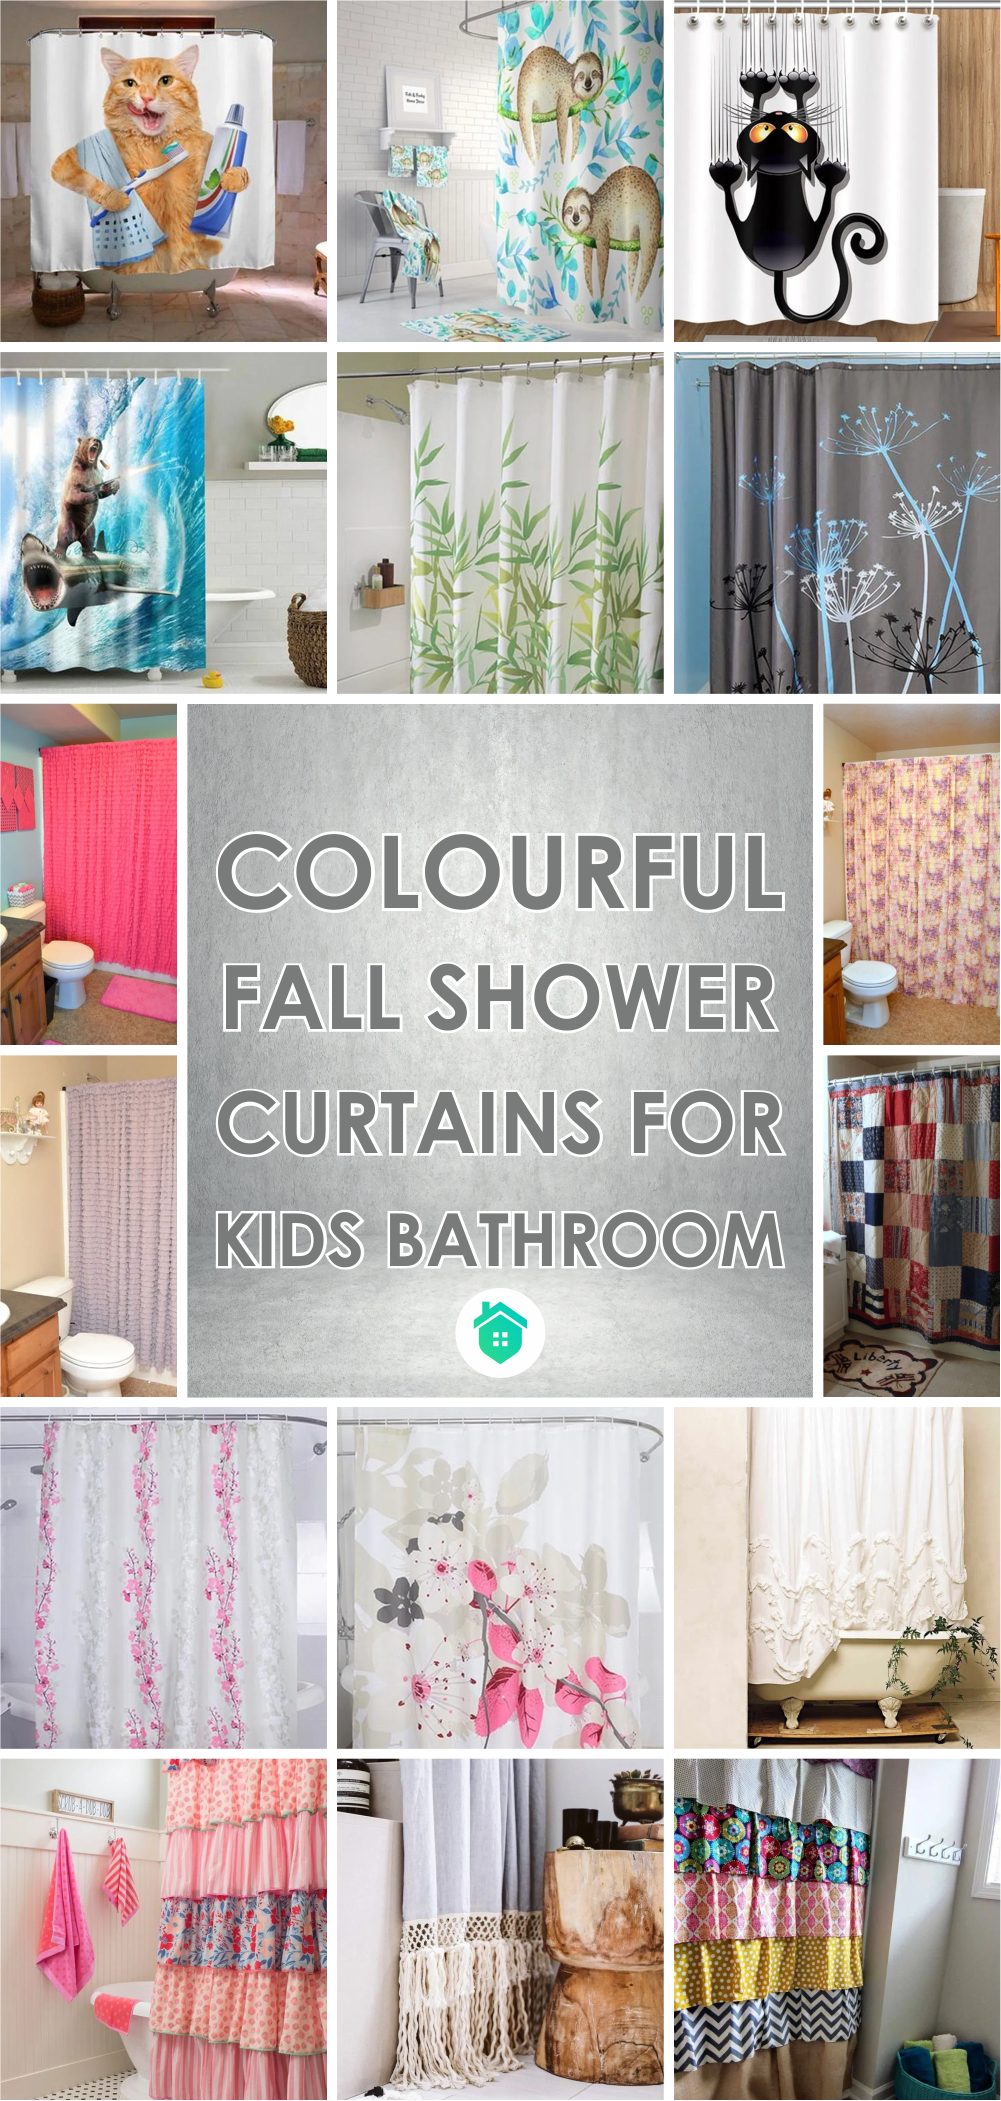 Colourful fall shower curtains for kids bathroom 1